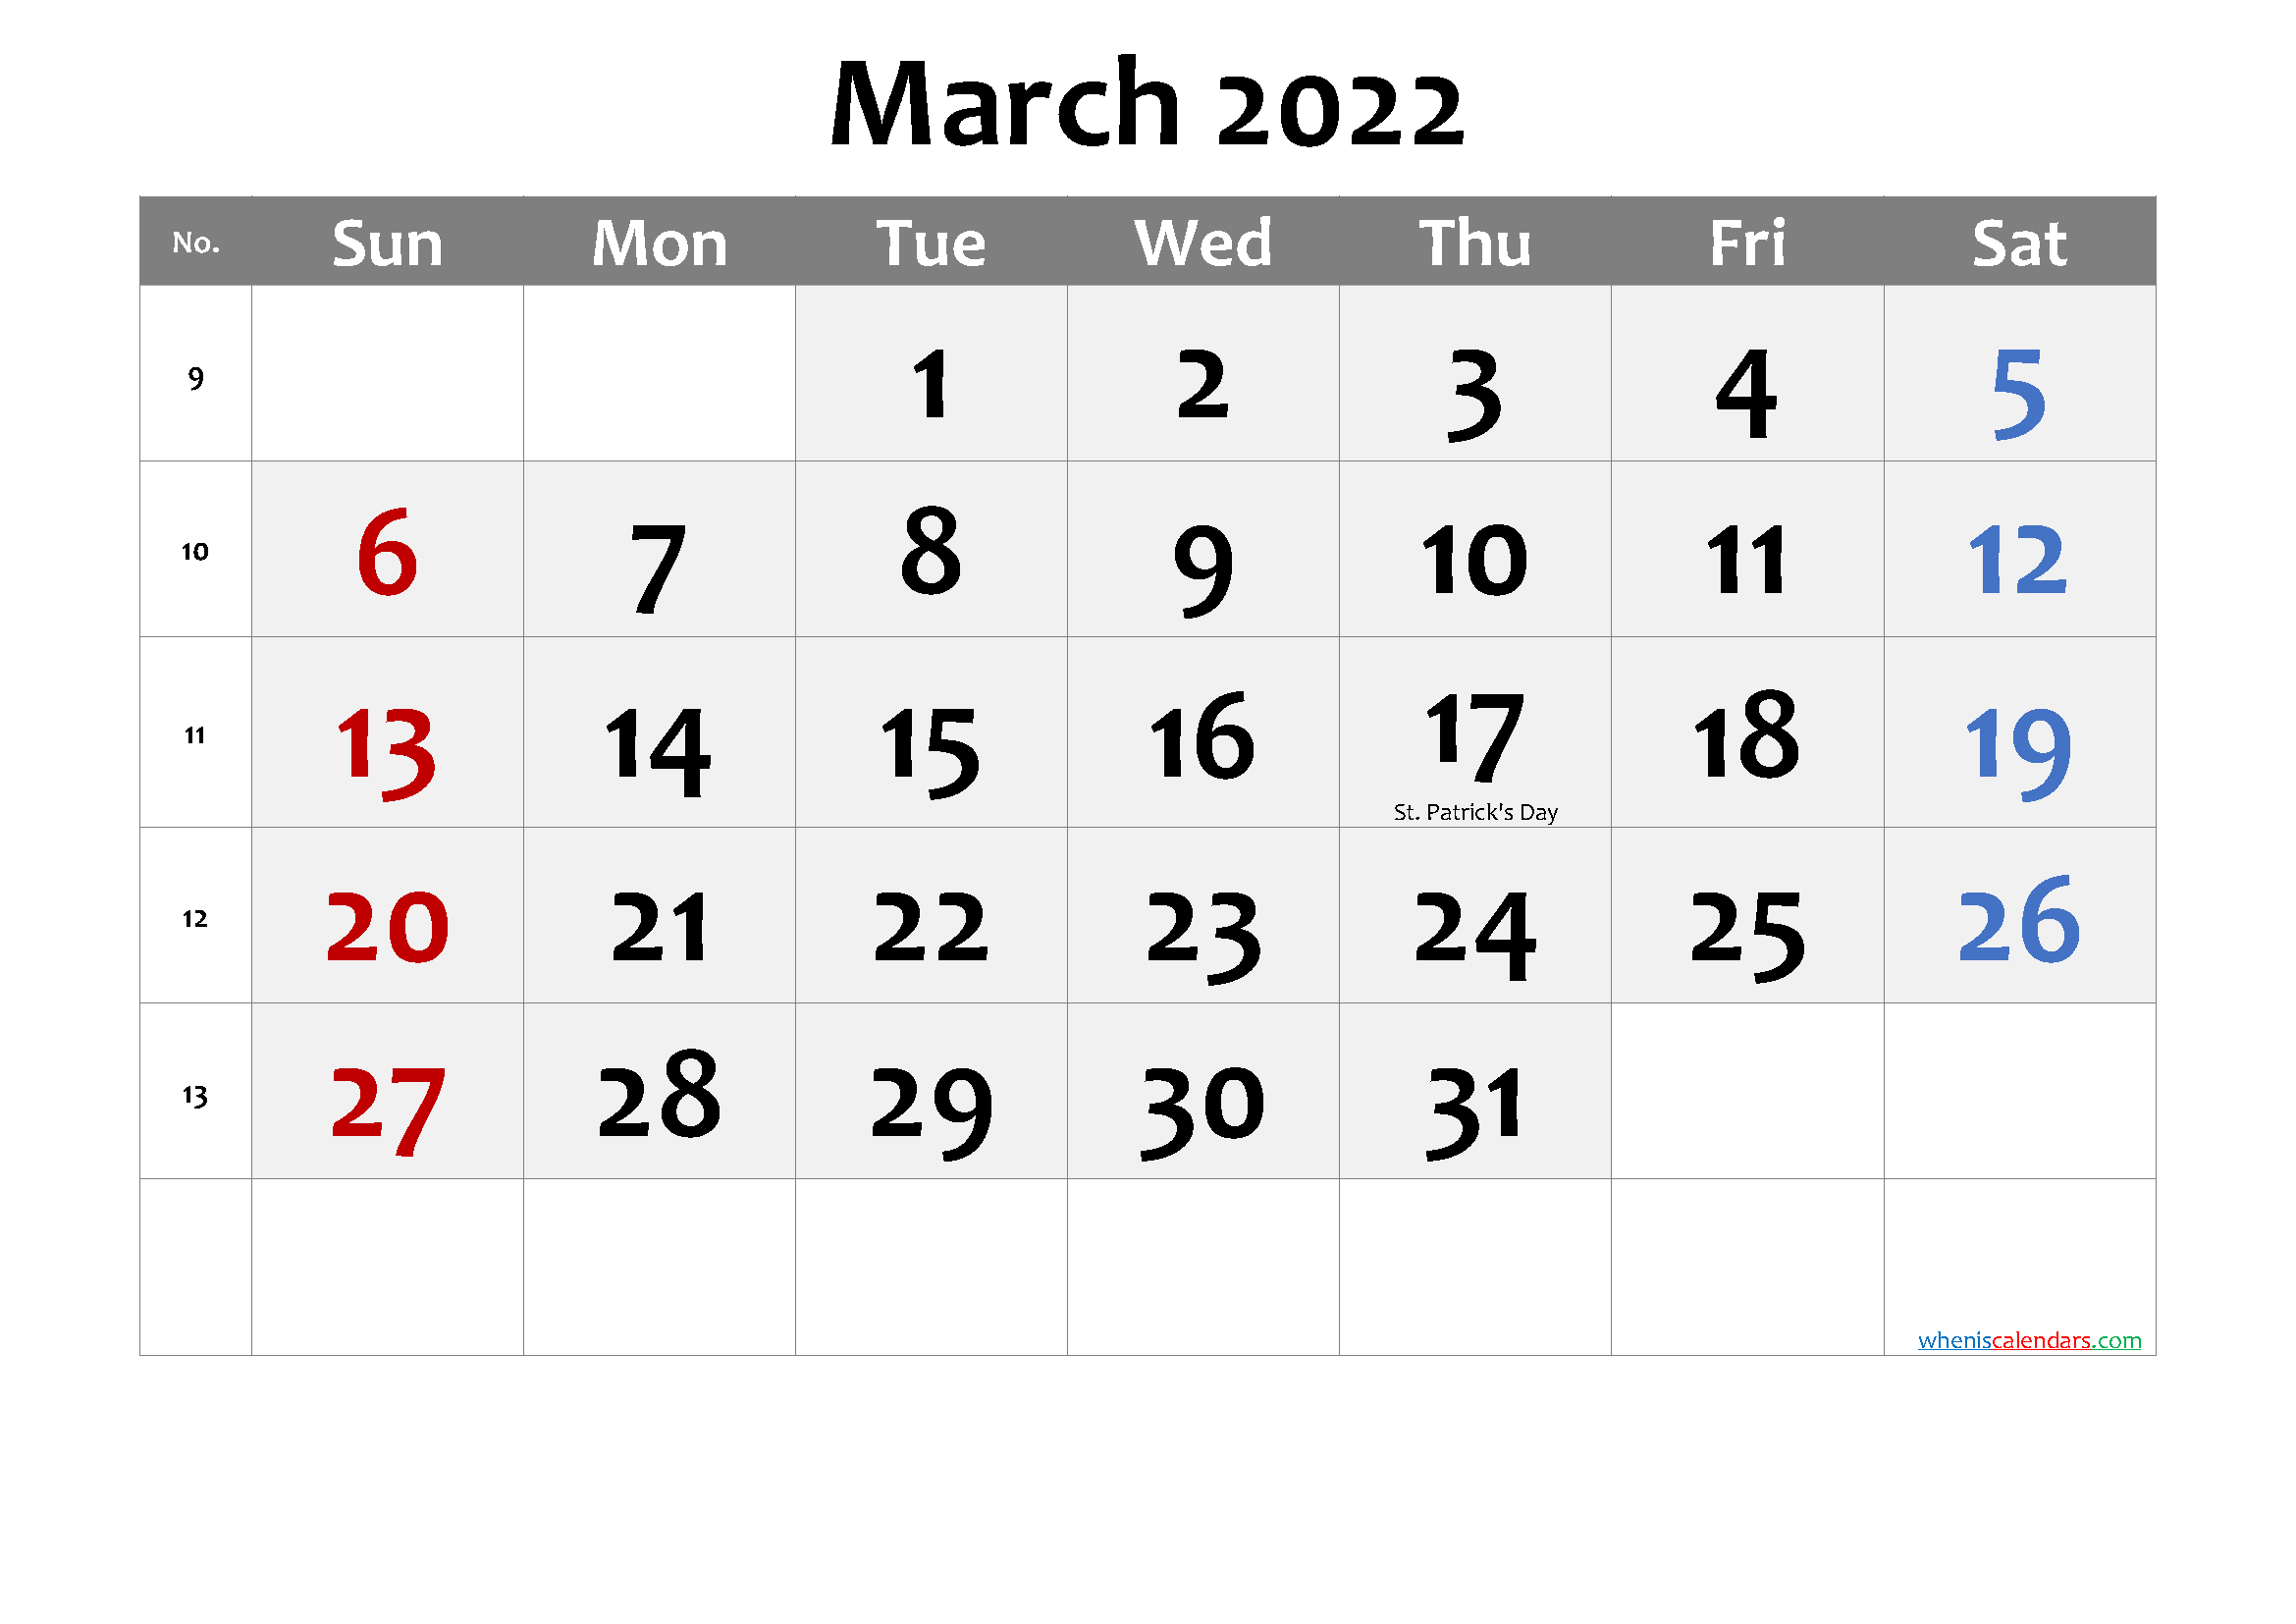 March 2022 Calendar with Holidays Printable